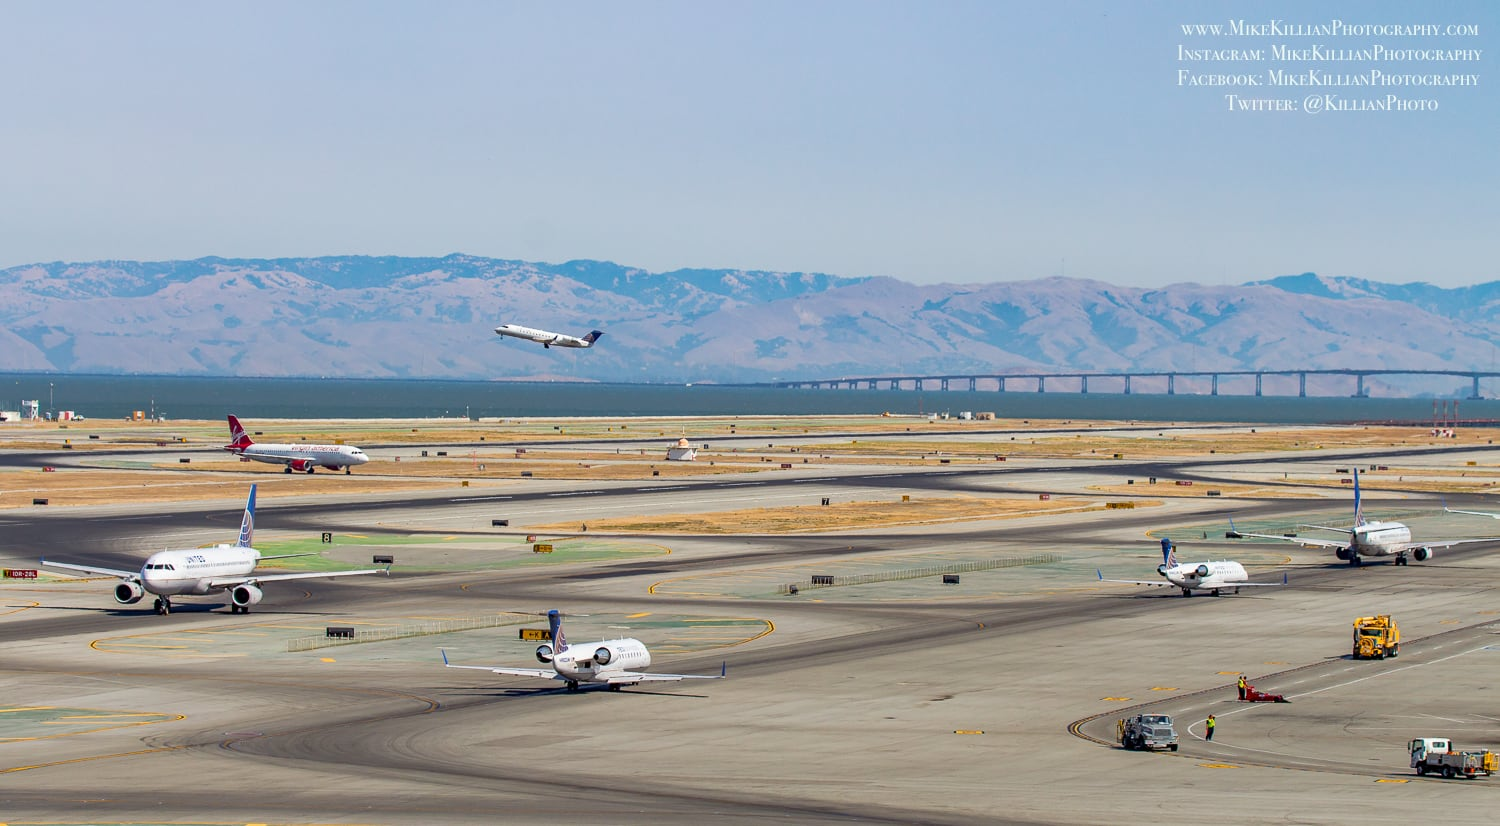 A view out towards SFO's runways. Credit Mike Killian